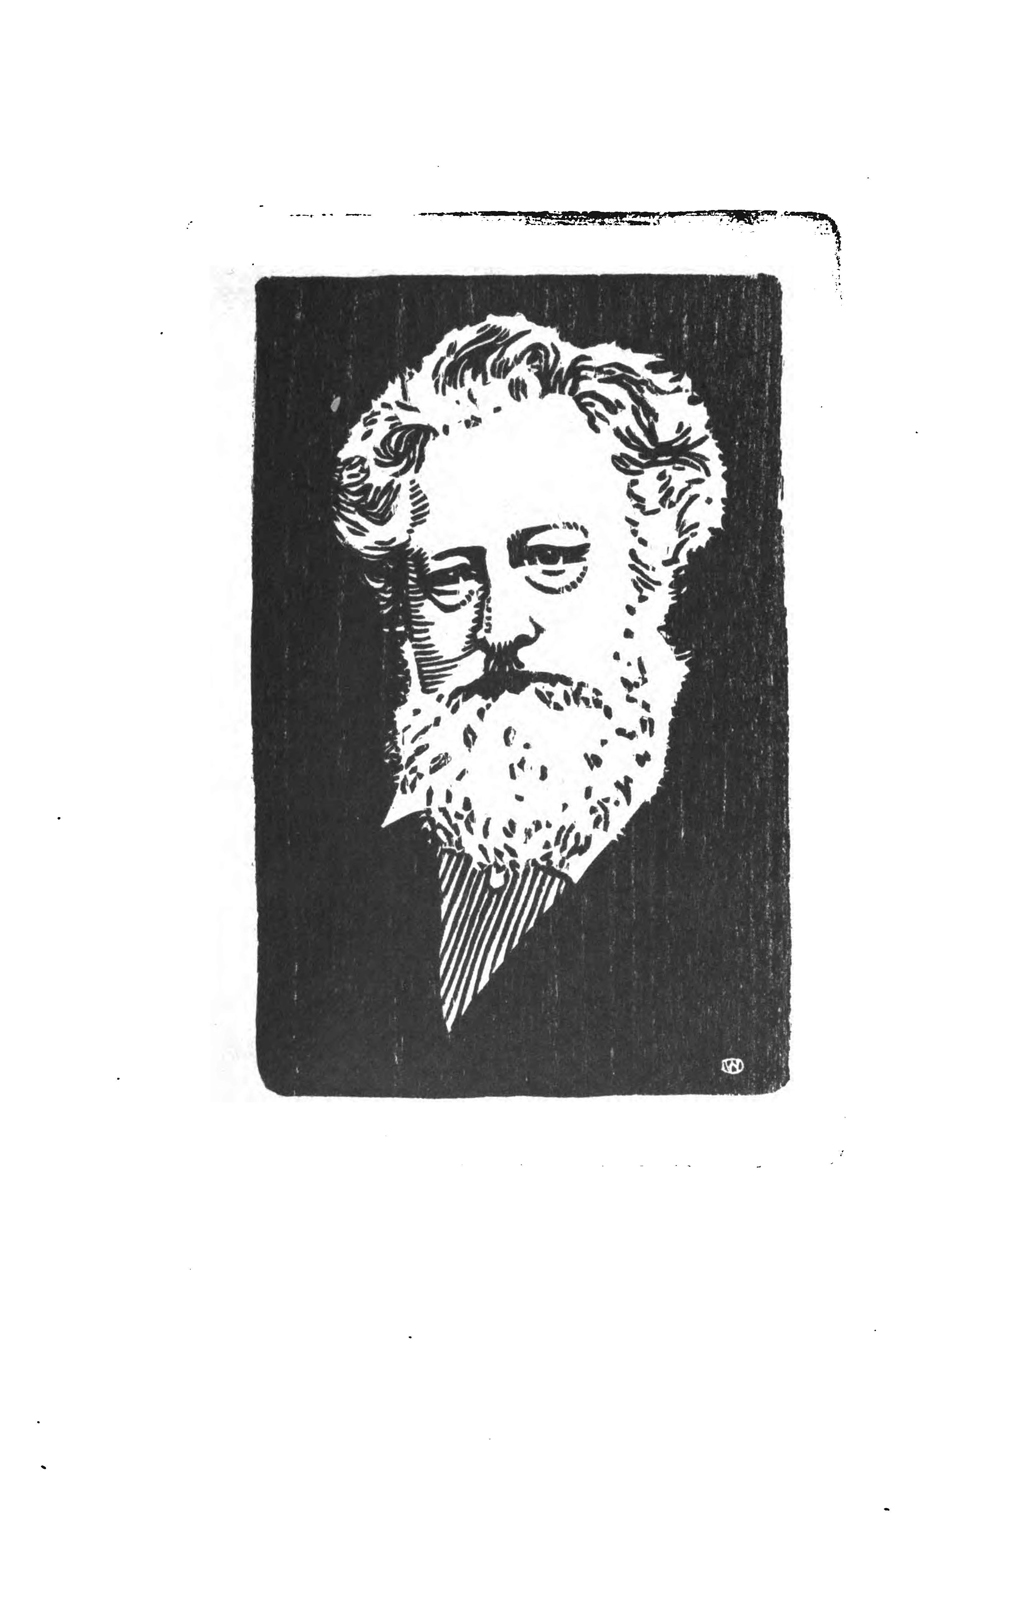 "Woodcut portrait of William Morris by W.A. Dwiggins from ""The Poetry of William Morris"" by Wallace Rice in The Blue Sky: A Monthly Magazine vol. V, no. 1 (April 1902). From GoogleBooks."